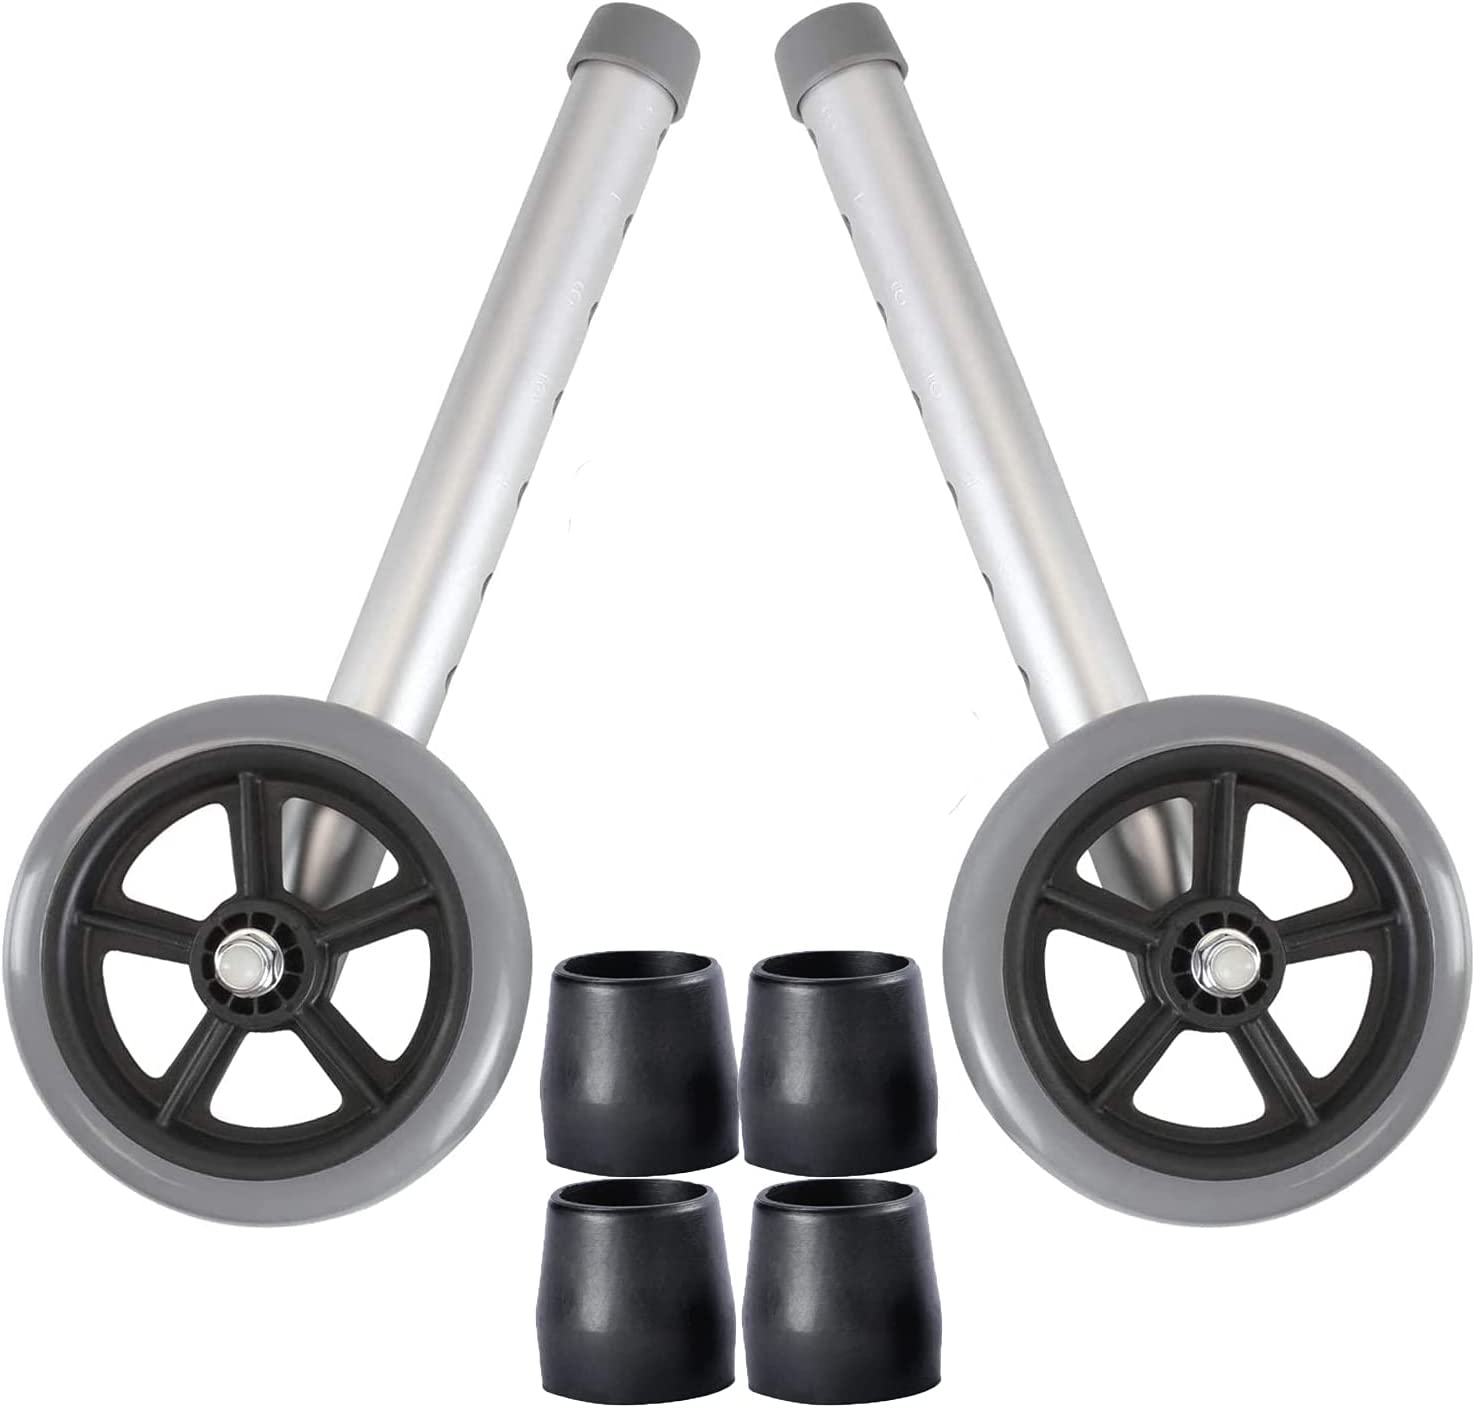 High order Walker Wheels and Ski 2021new shipping free Glides Feet Pa - Accessories Replacement